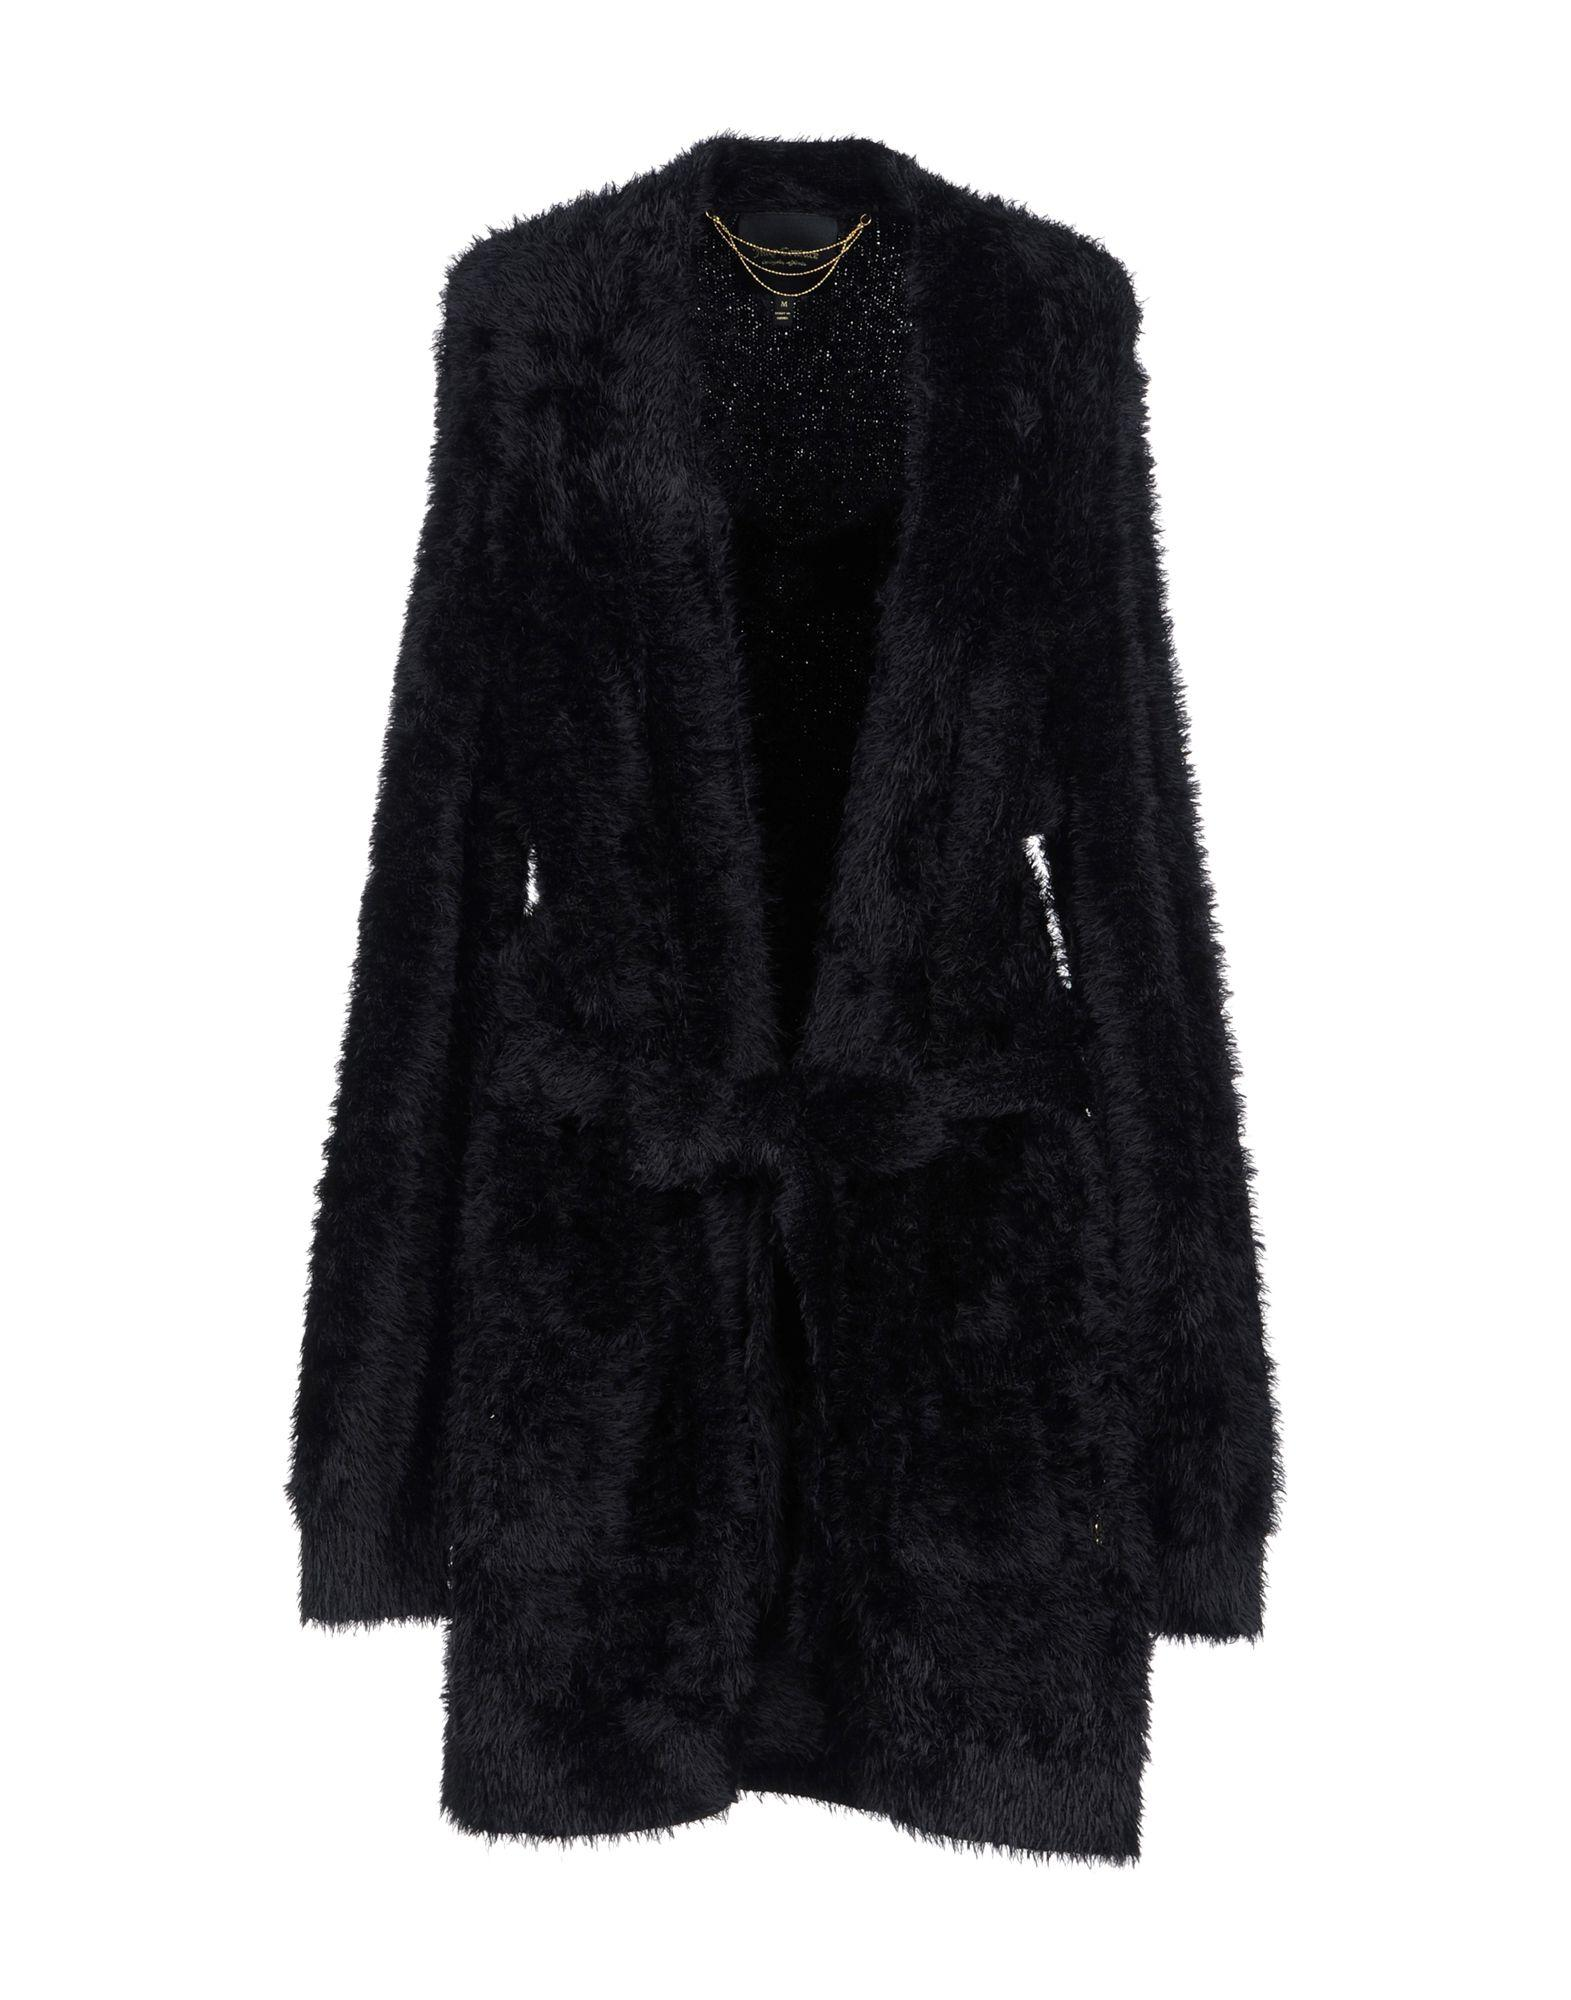 Juicy Couture Cardigans In Black